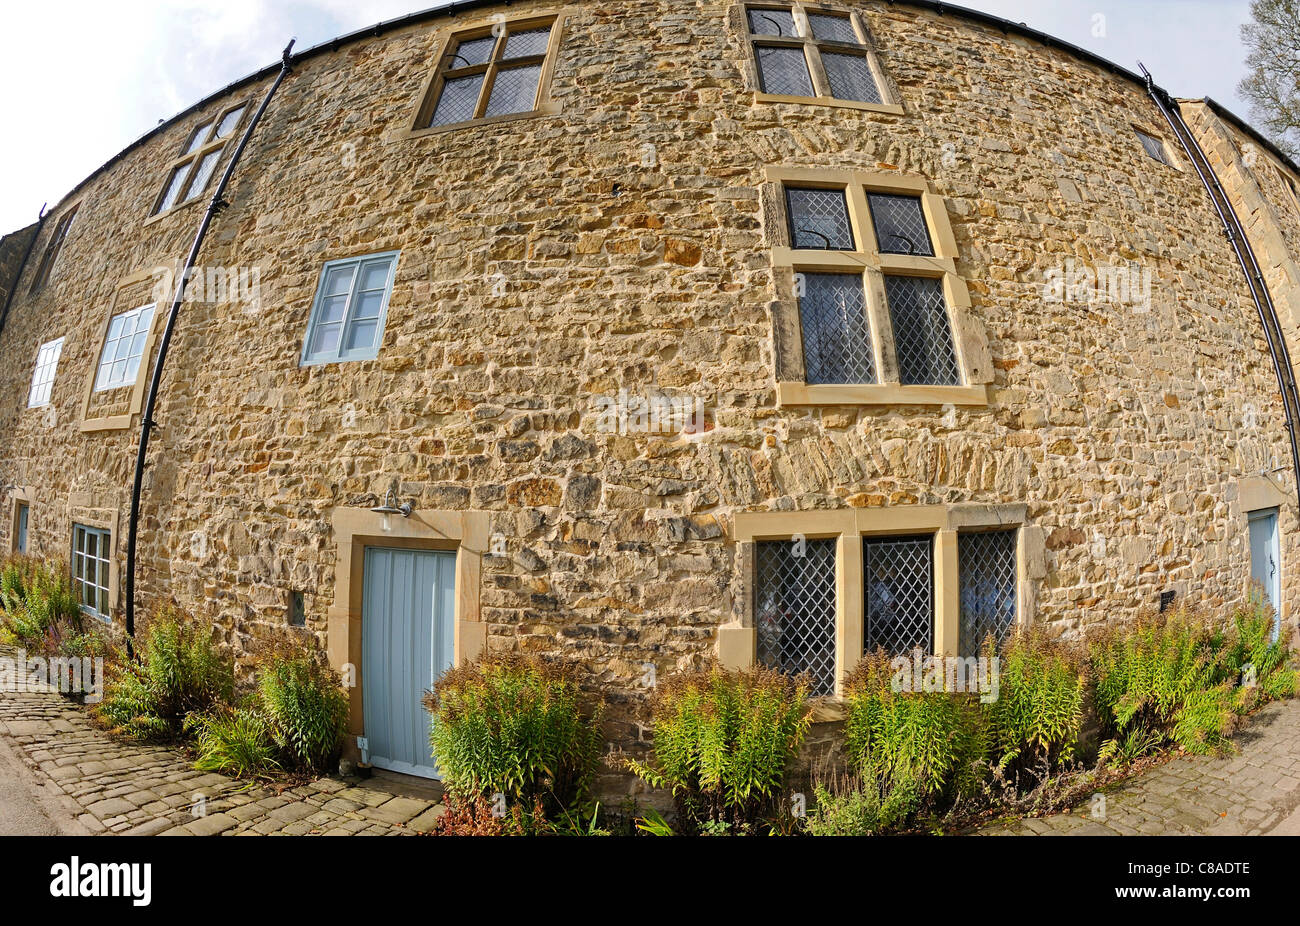 Elizabethan stone built manor and farm houses renovated into holiday homes. Stock Photo